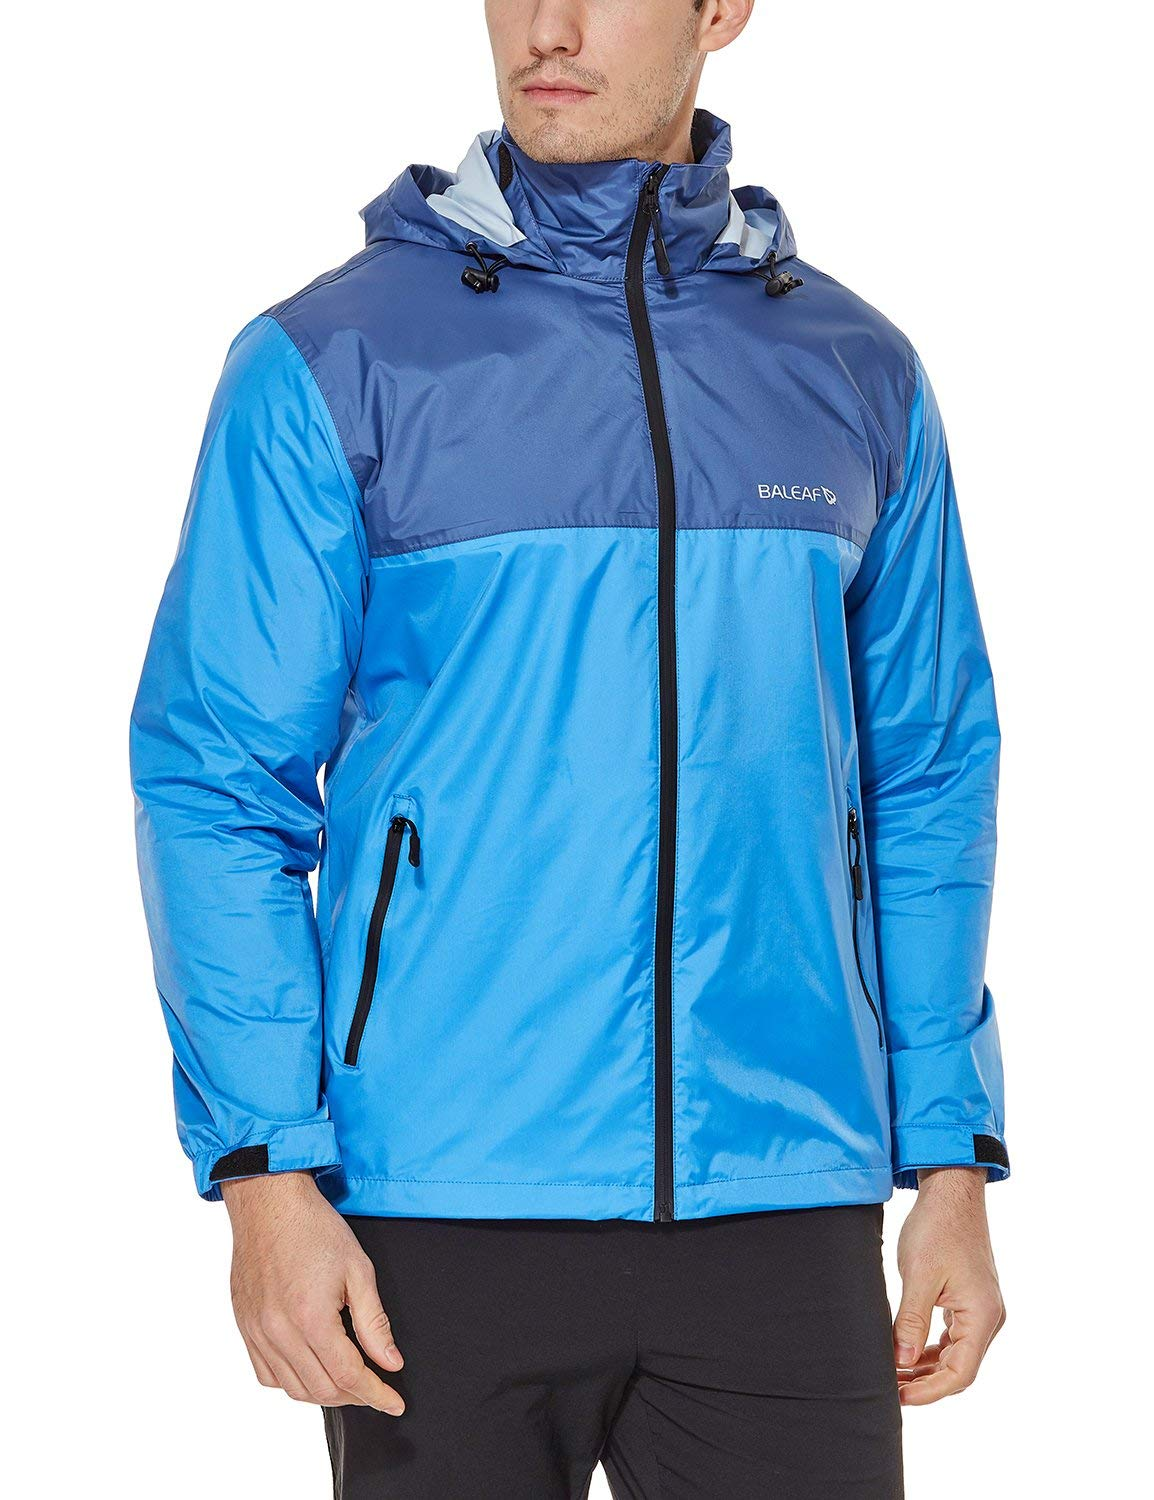 Baleaf Men's Rain Jacket Waterproof Front-Zip Raincoats Hideaway Hood Blue/Navy M by Baleaf